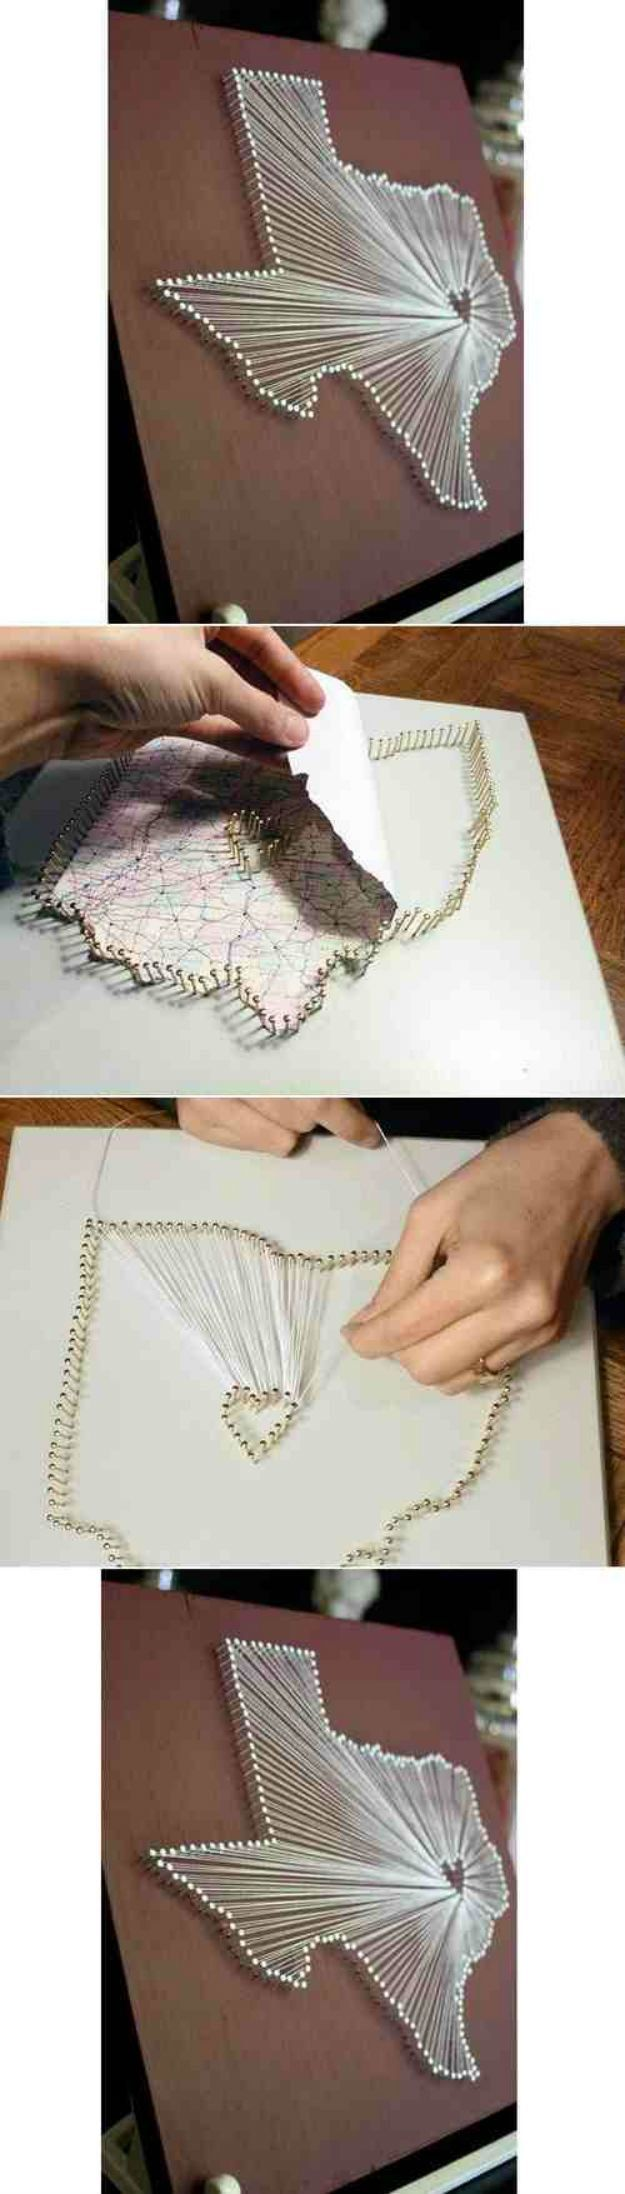 Arts and crafts for your girlfriend